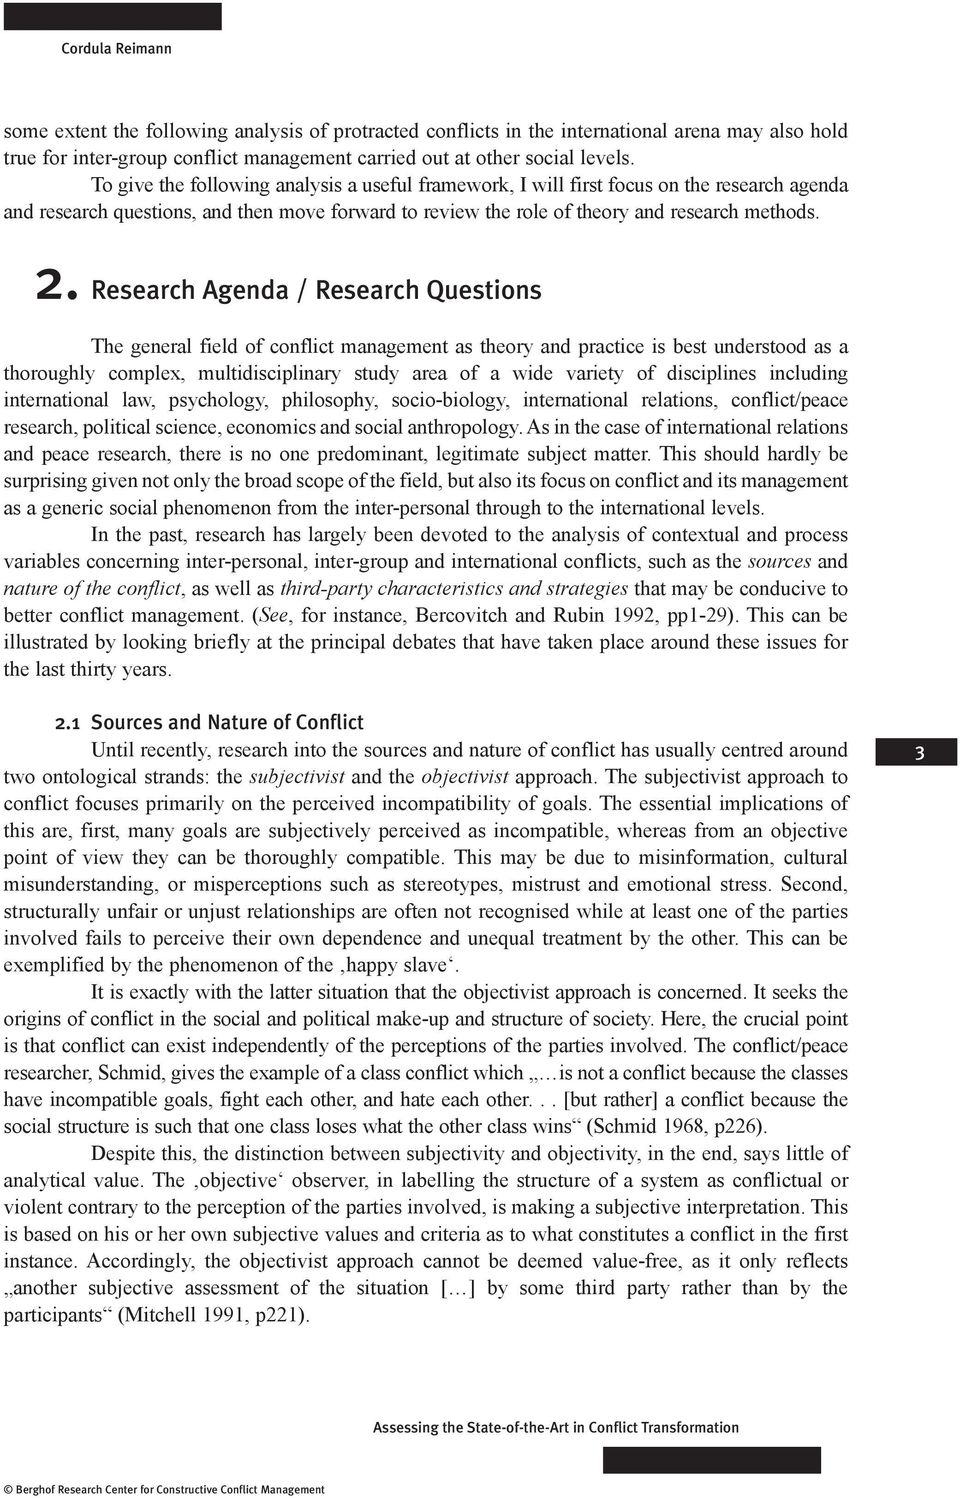 Research Agenda / Research Questions The general field of conflict management as theory and practice is best understood as a thoroughly complex, multidisciplinary study area of a wide variety of